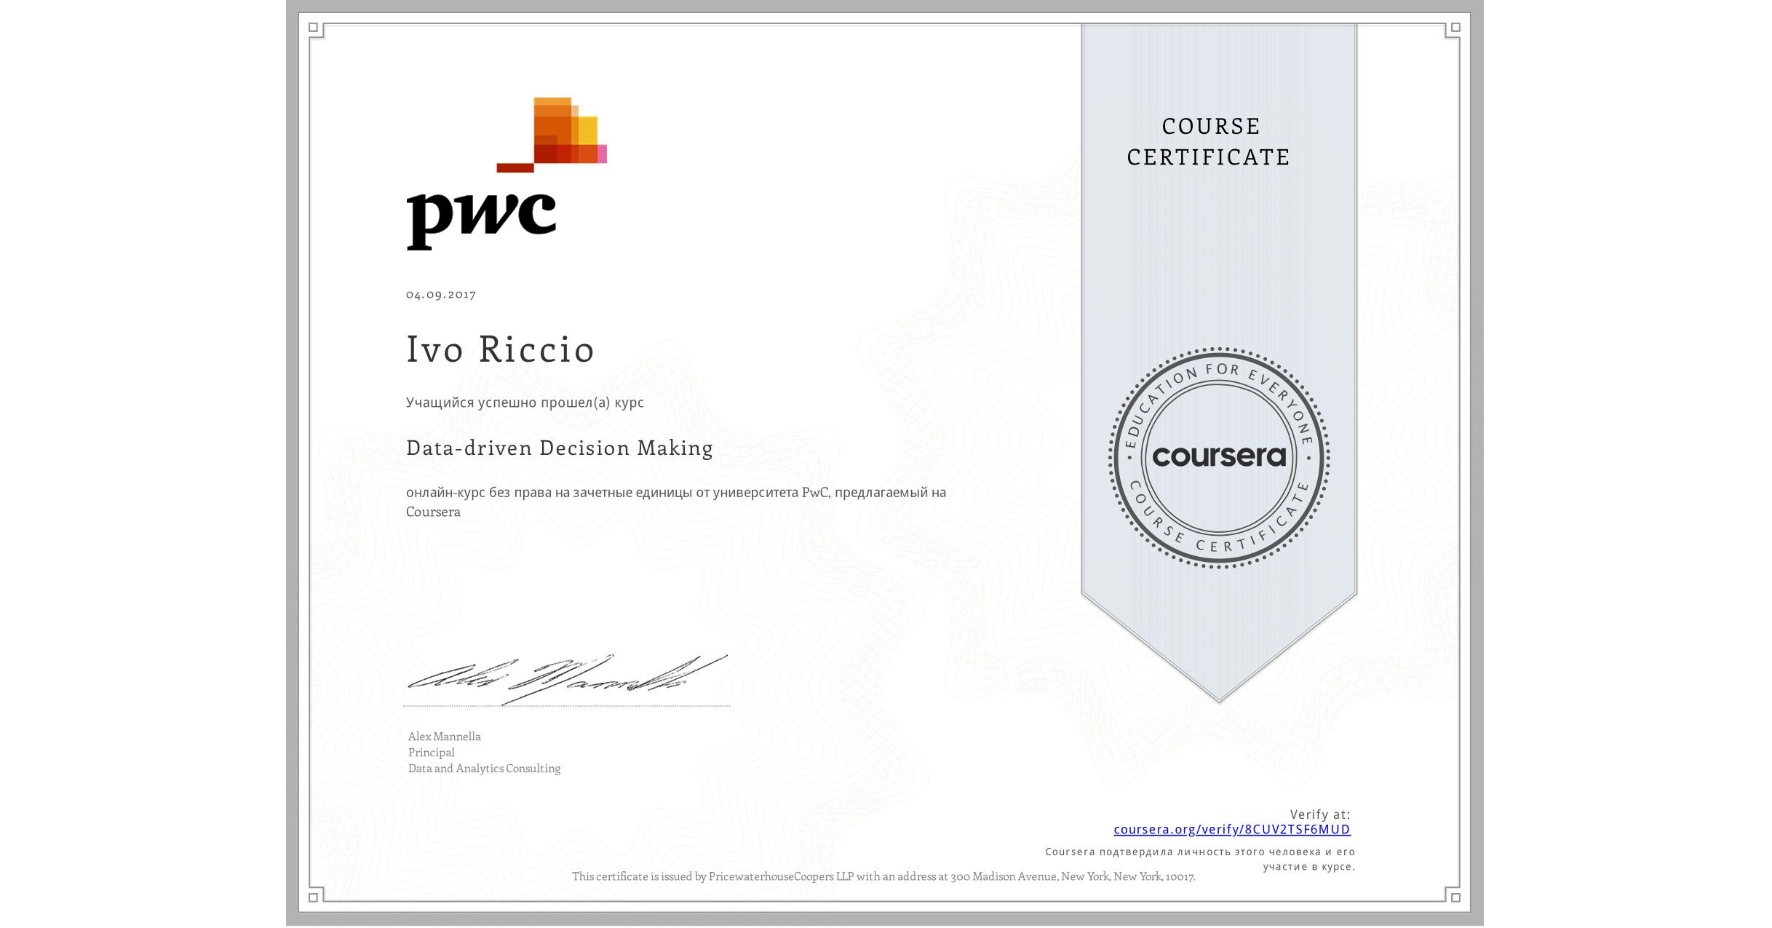 View certificate for Ivo Riccio, Data-driven Decision Making, an online non-credit course authorized by PwC and offered through Coursera